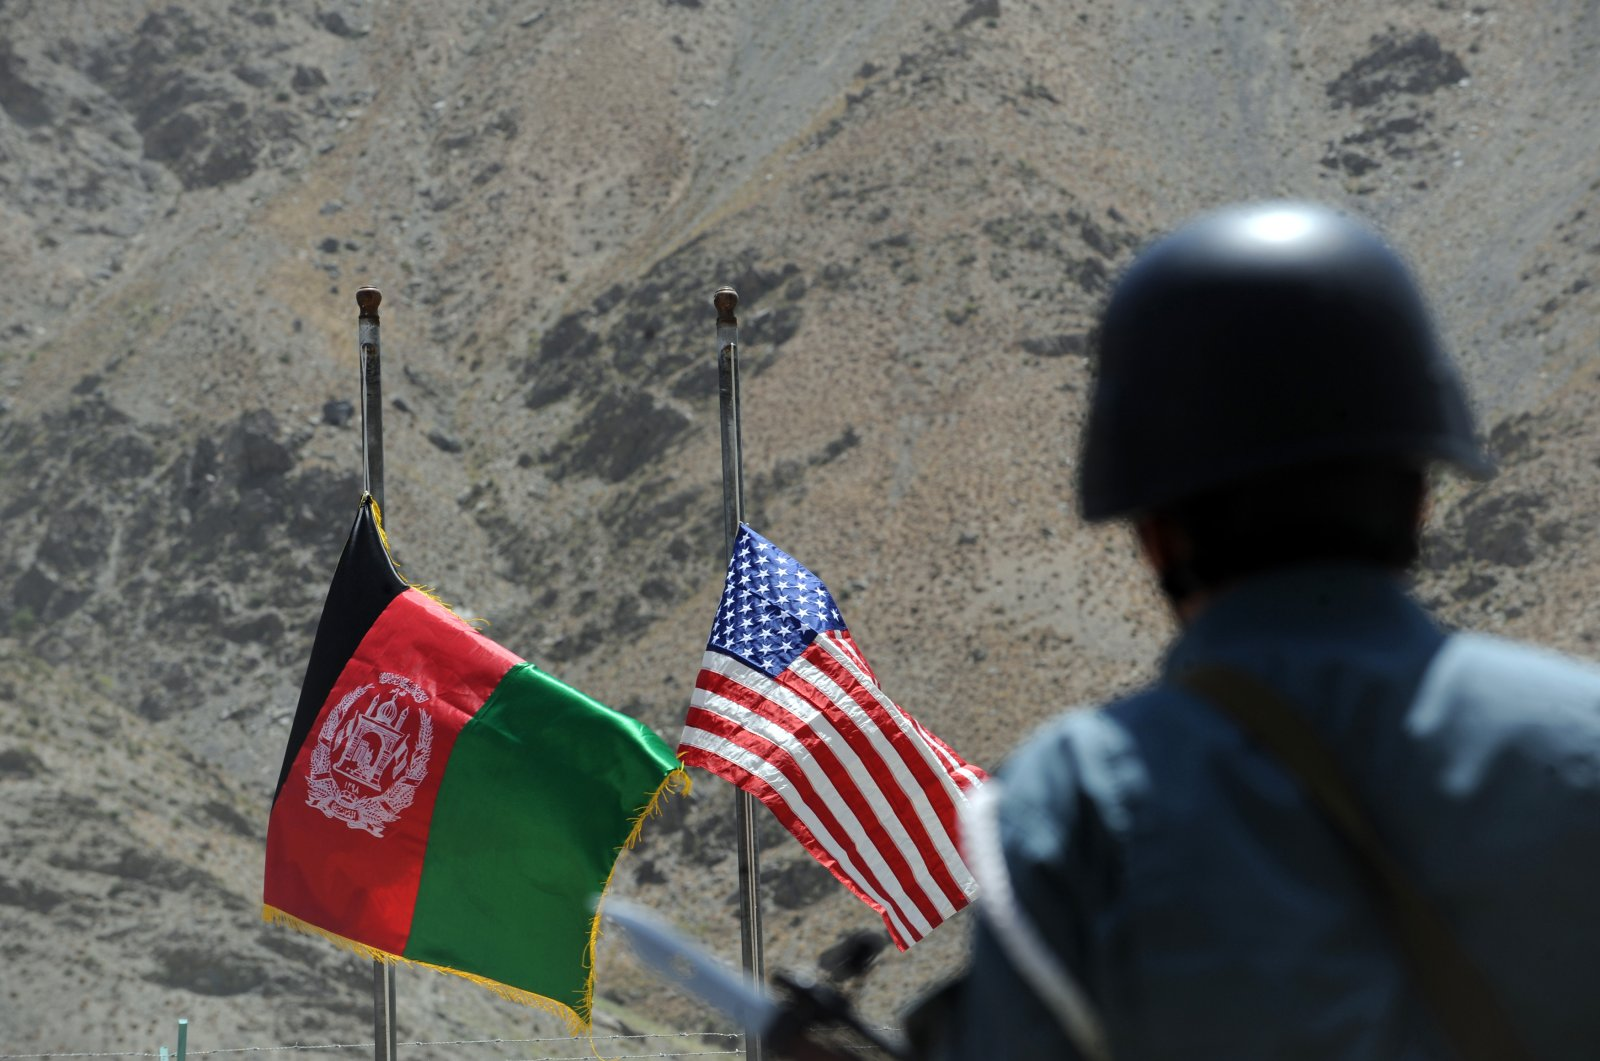 In this file photo taken on July 24, 2011 Afghan and US flags are raised as a policeman keeps watch during a ceremony to hand over security control in the rugged mountains of the Panjshir valley. (AFP Photo)